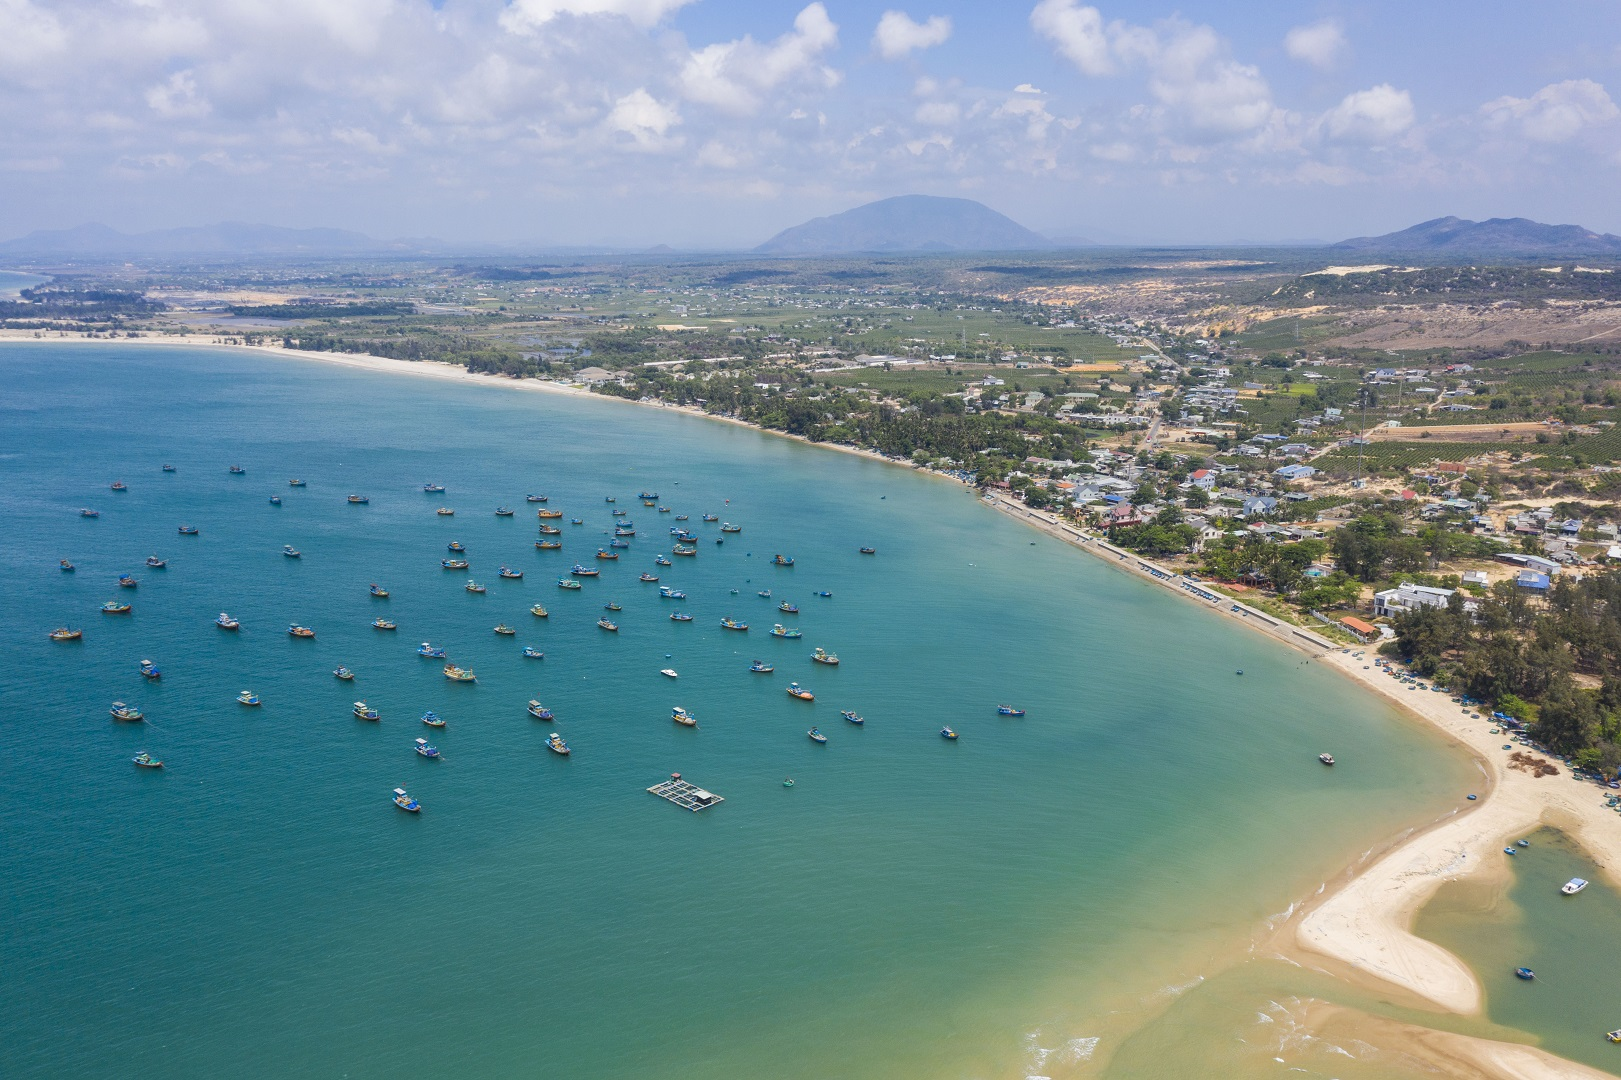 A bird's eye view photo captures fishing boats off shore Ho Tram Beach in the southern province of Ba Ria – Vung Tau. Photo: Quang Dinh / Tuoi Tre News